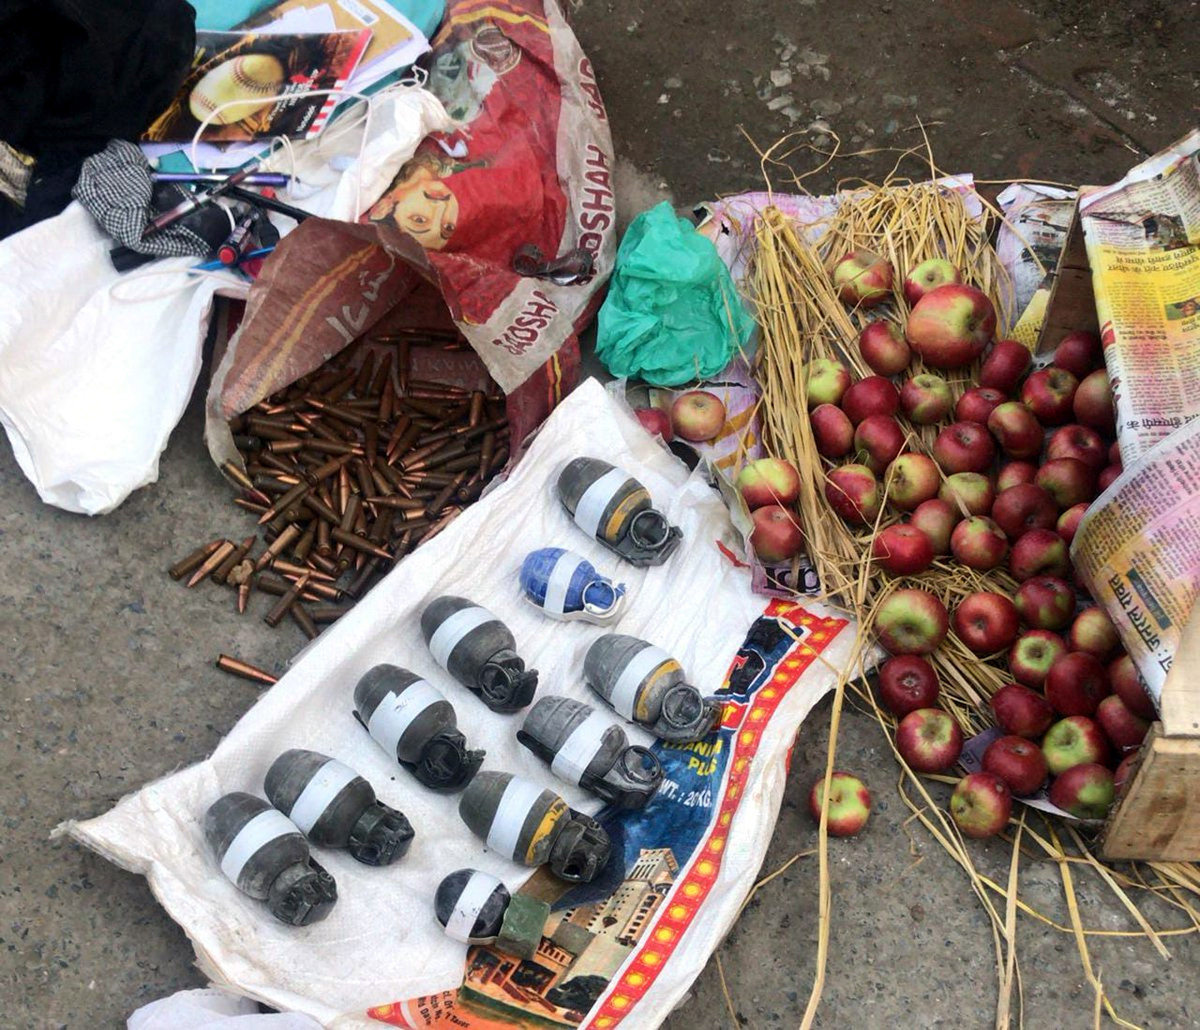 Explosive and ammunition recovered from three arrested militants in Srinagar on Monday.